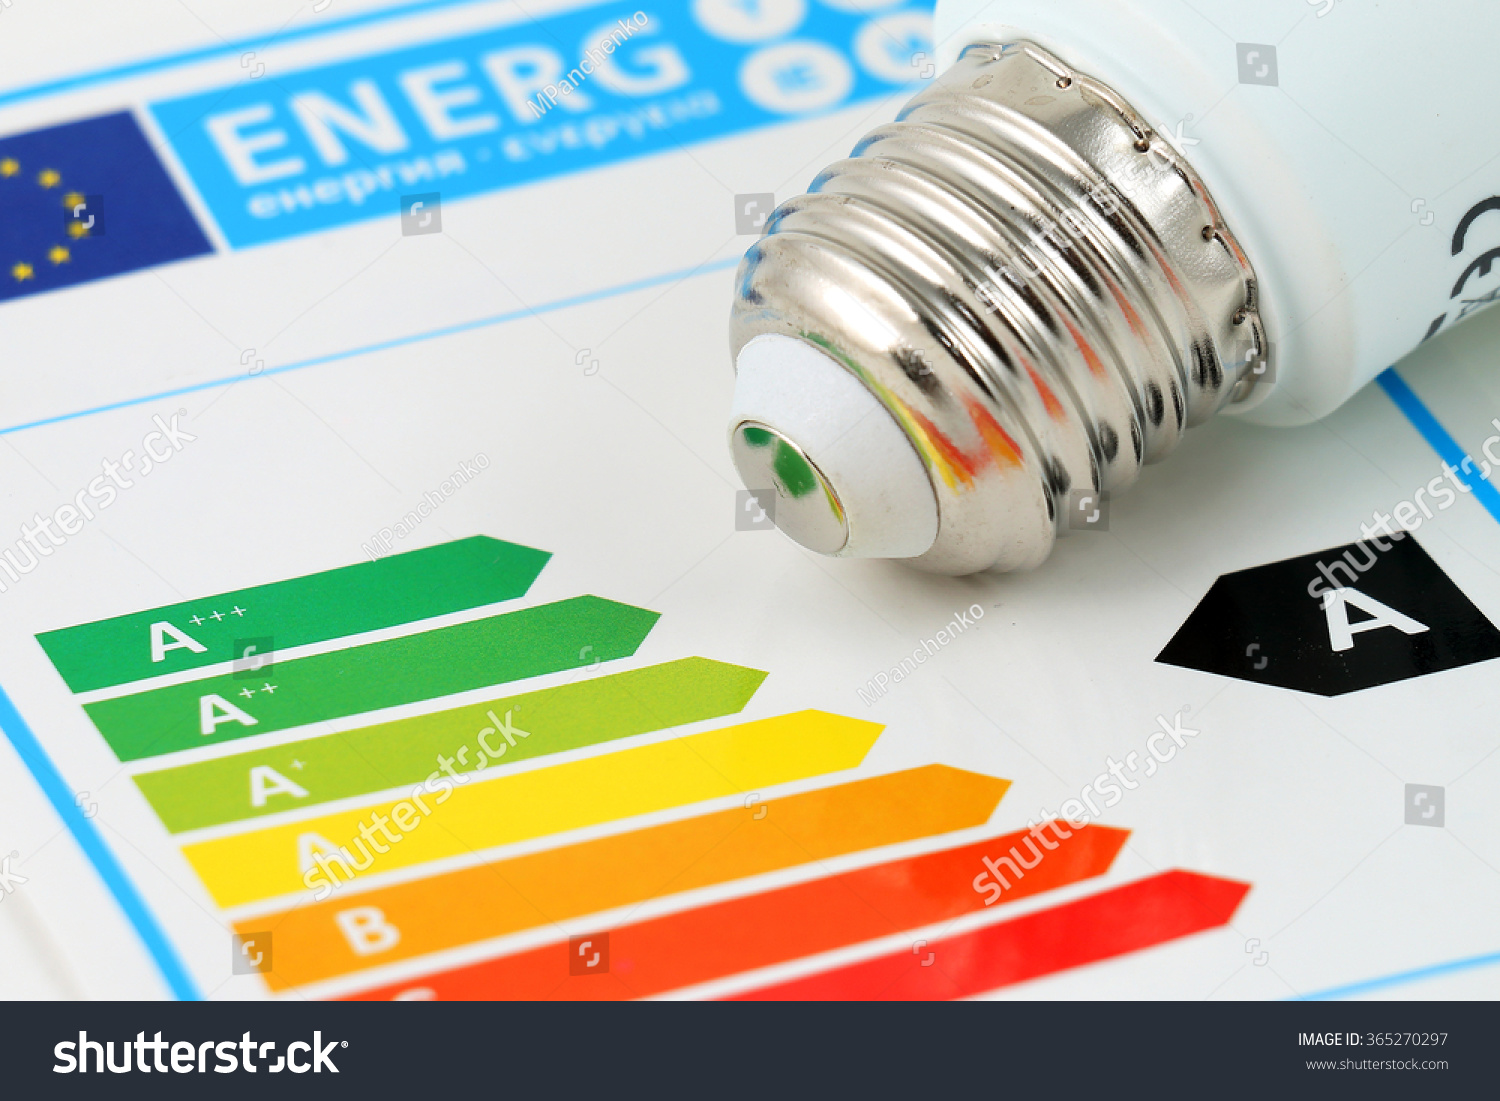 stock-photo-energy-efficiency-concept-with-energy-rating-chart-365270297.jpg